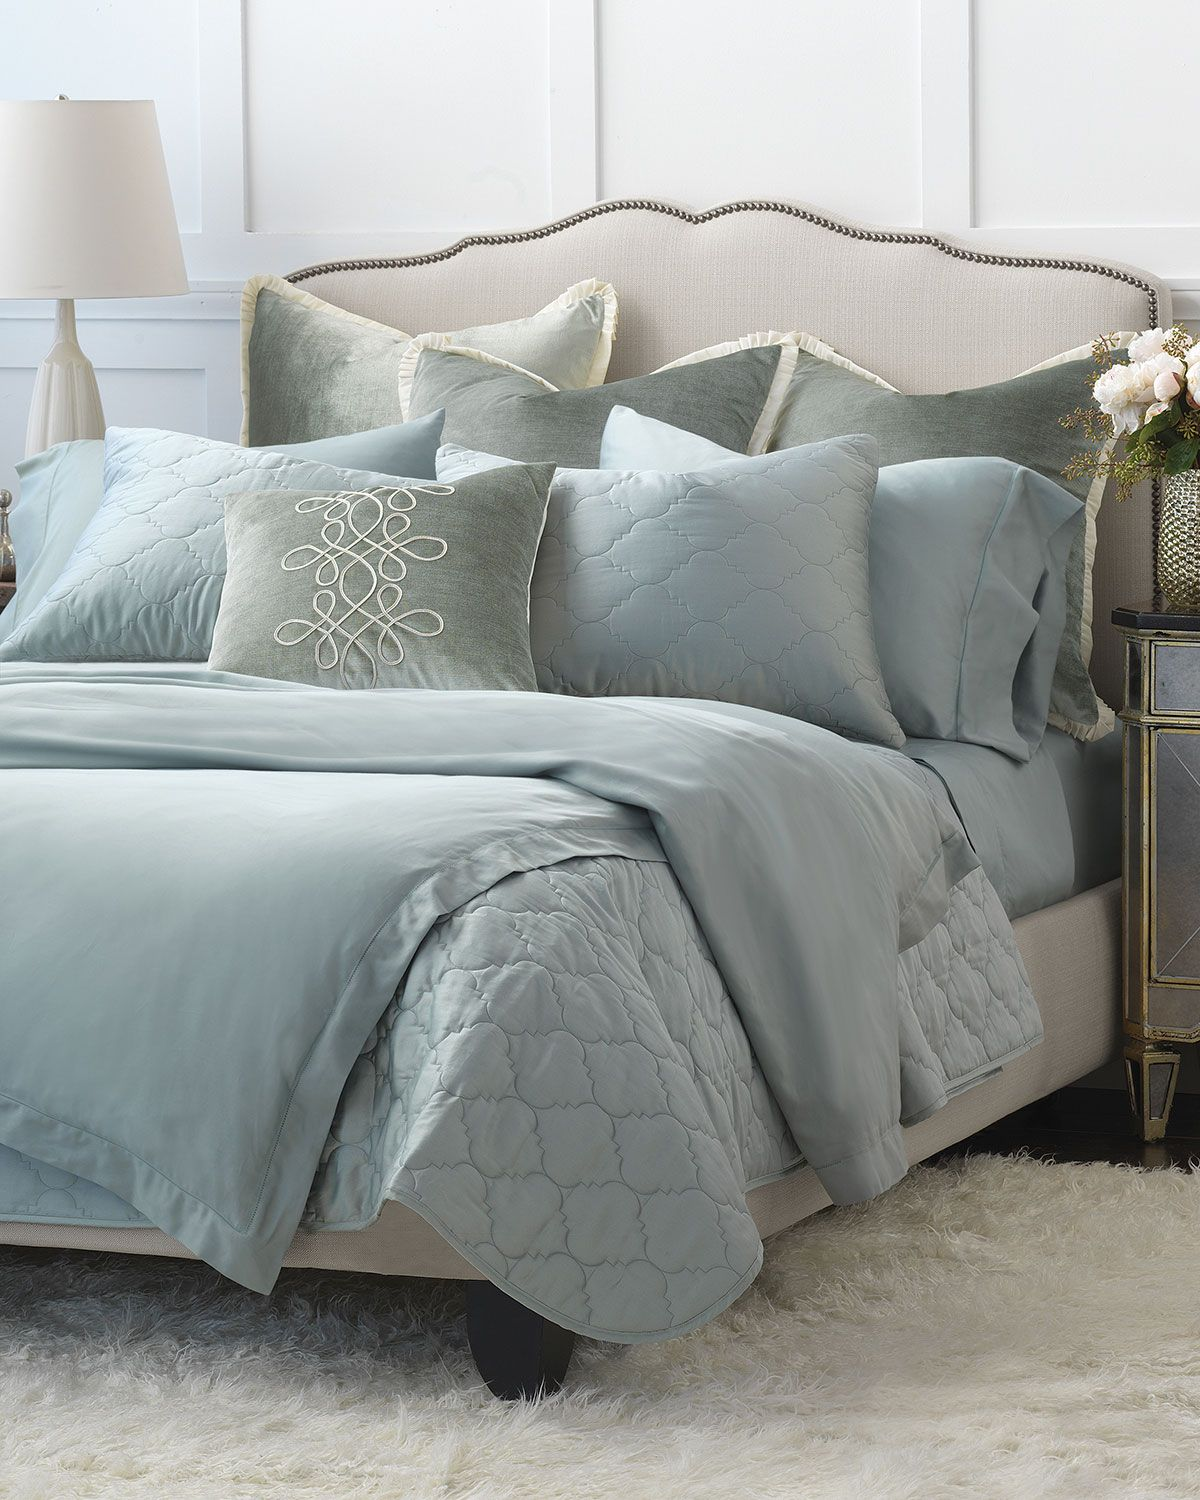 Reign Oversized Queen Duvet Cover Luxury bedding, Luxury